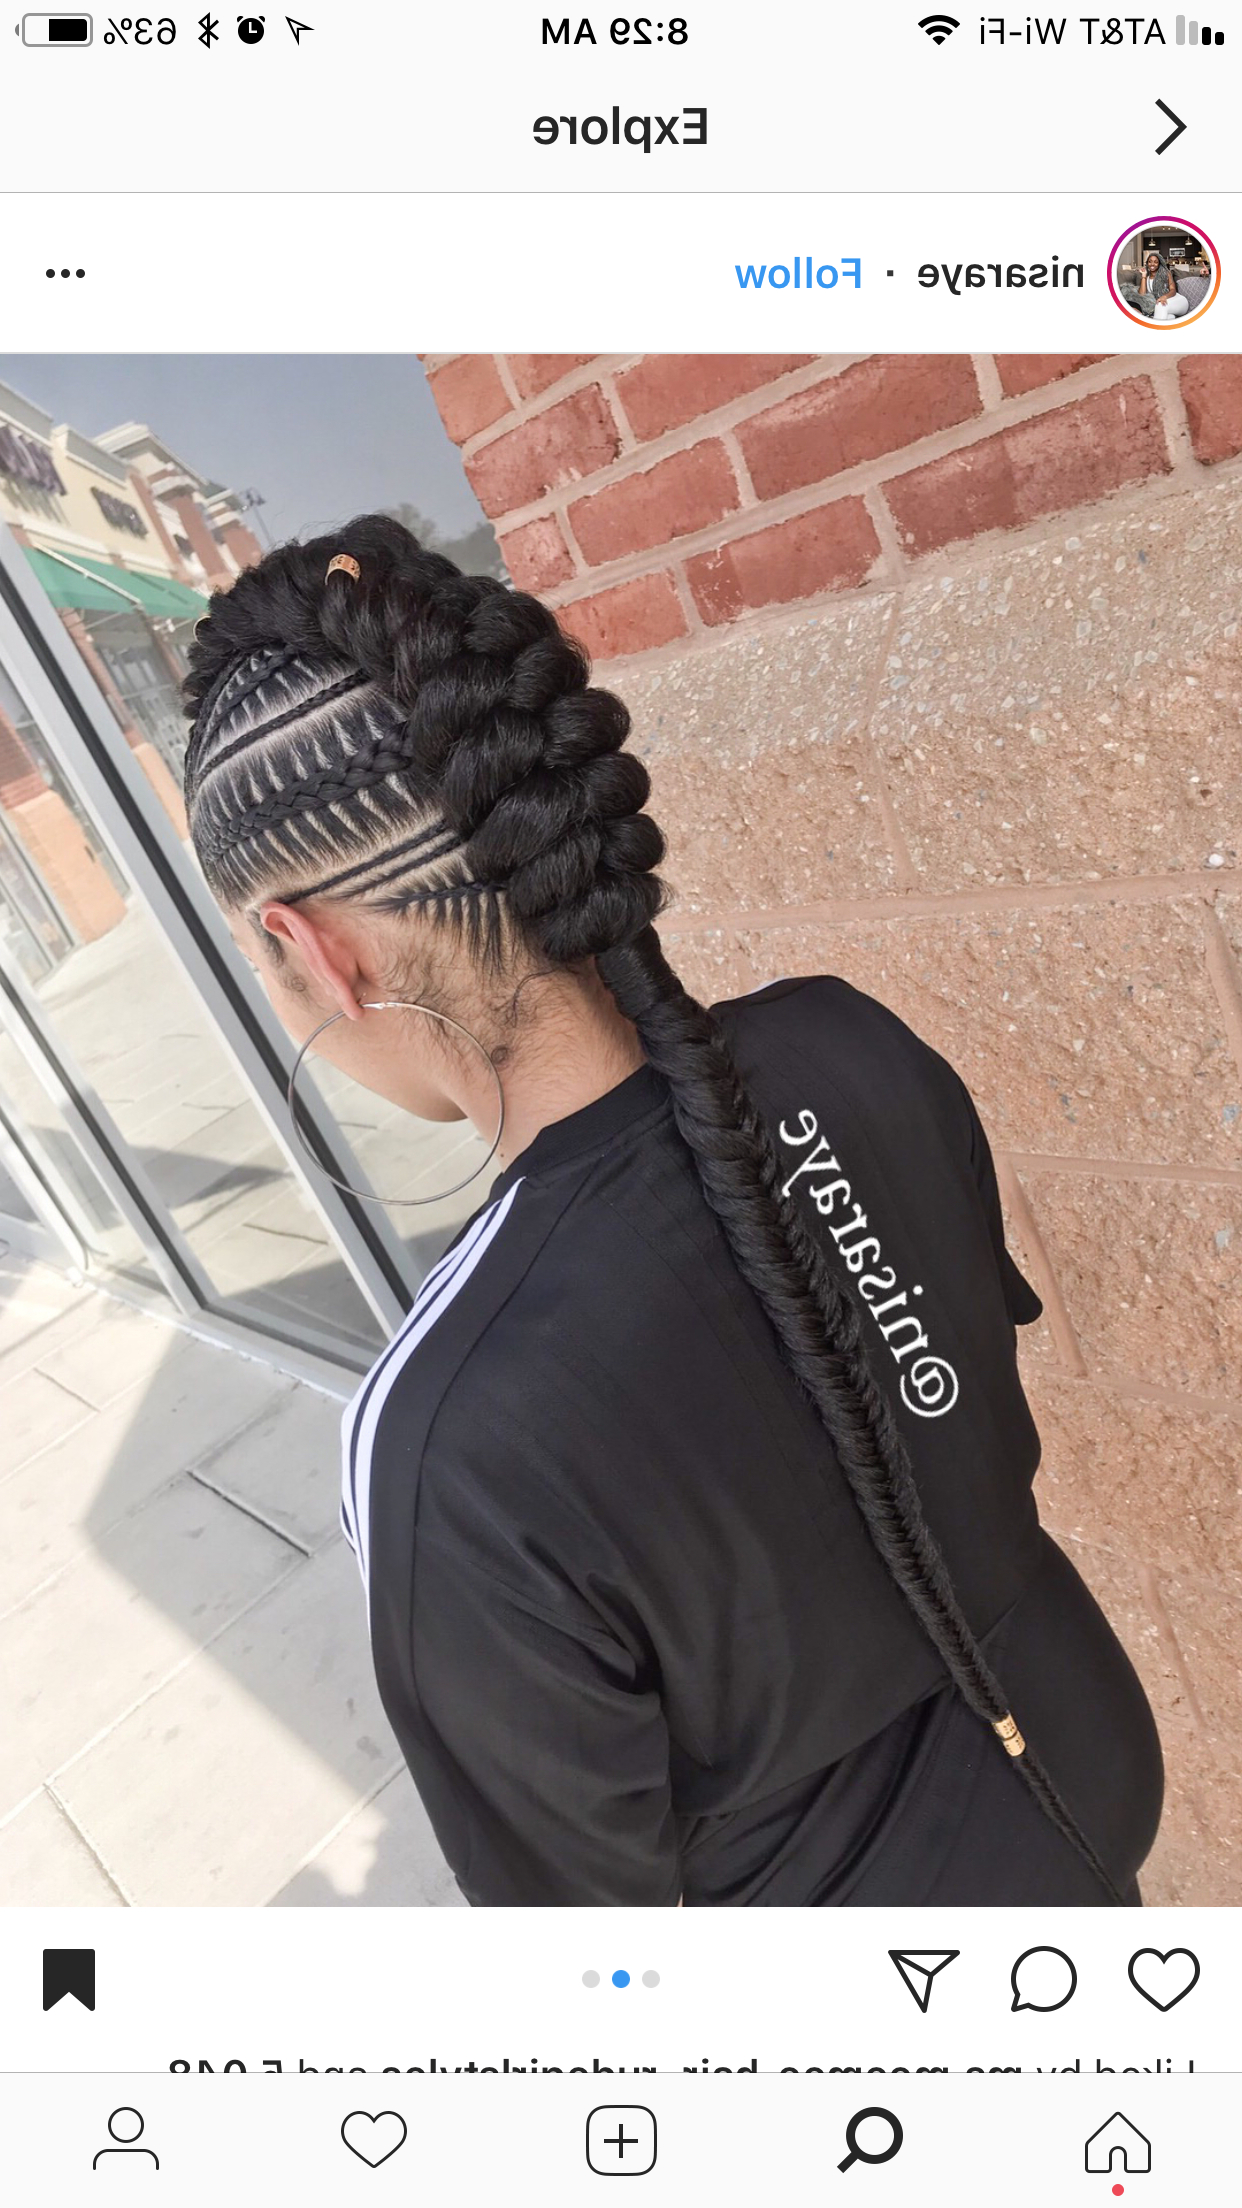 Braided Hairstyles, Hair Regarding Well Known Twisted Braids Mohawk Hairstyles (View 16 of 20)